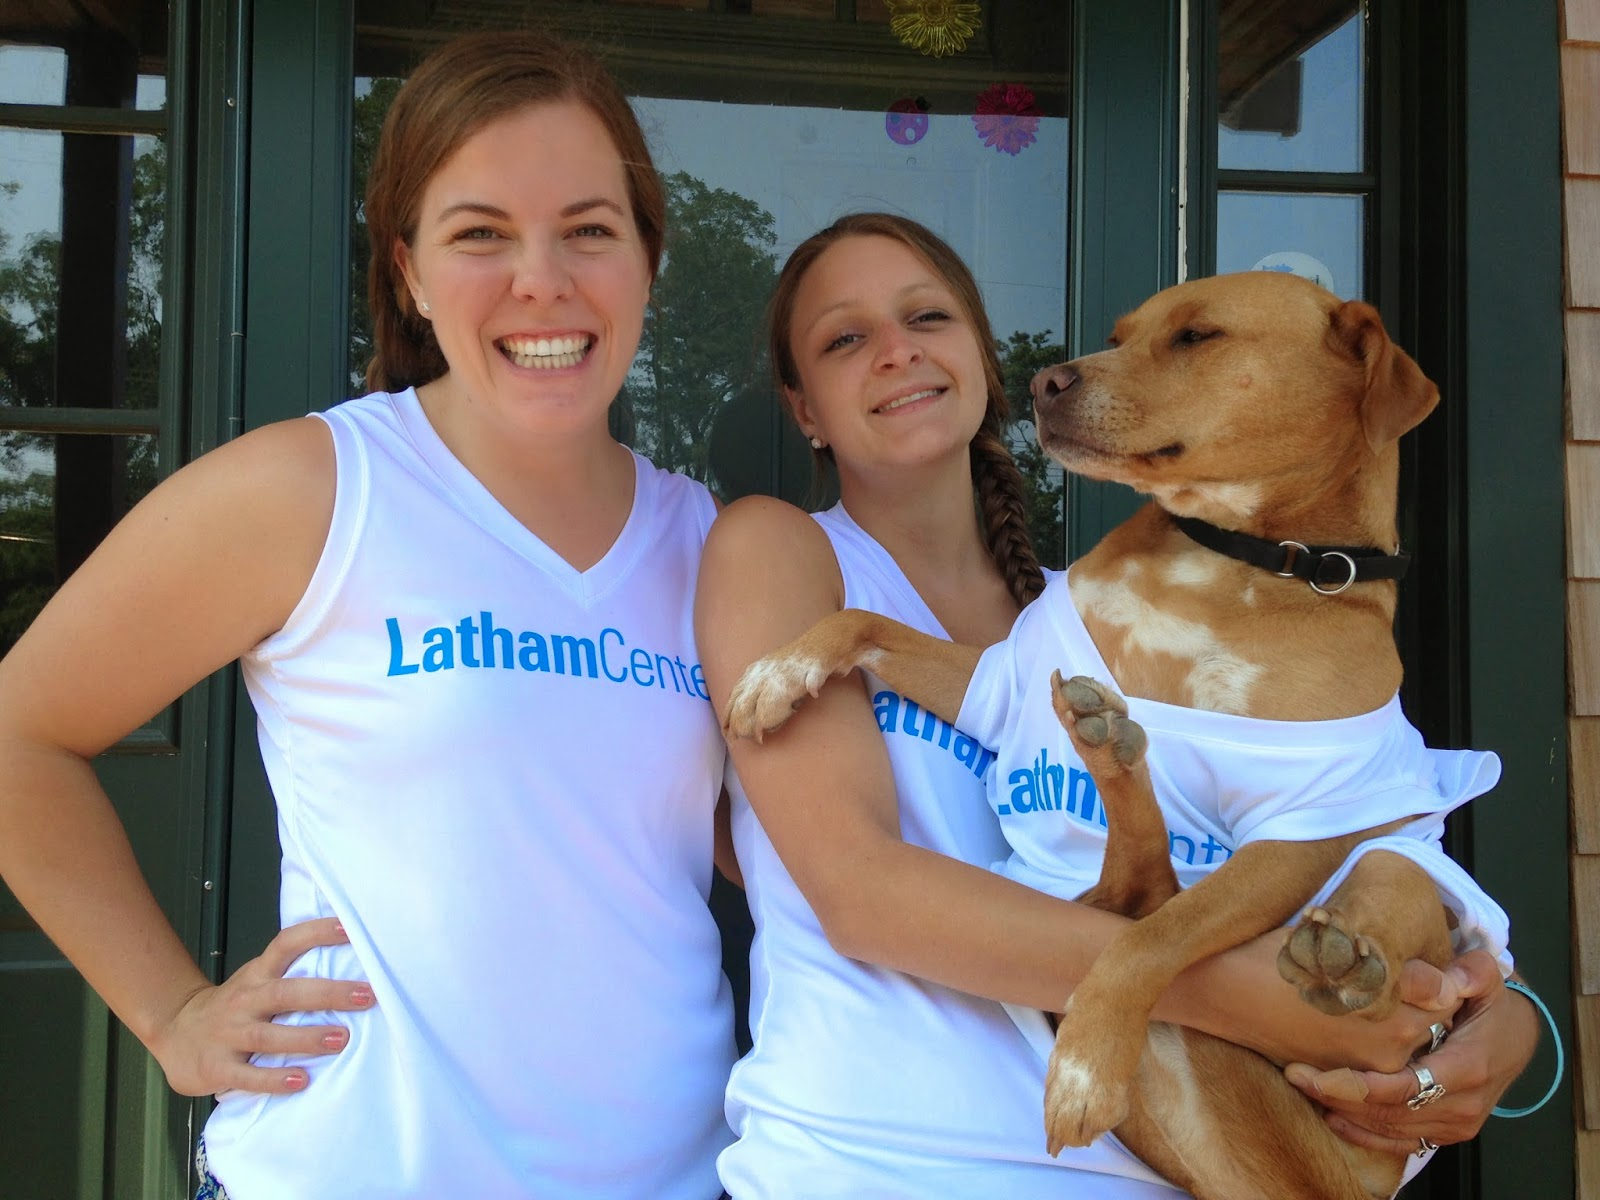 http://lathamcenters.donorpages.com/FalmouthRoadRace2014/